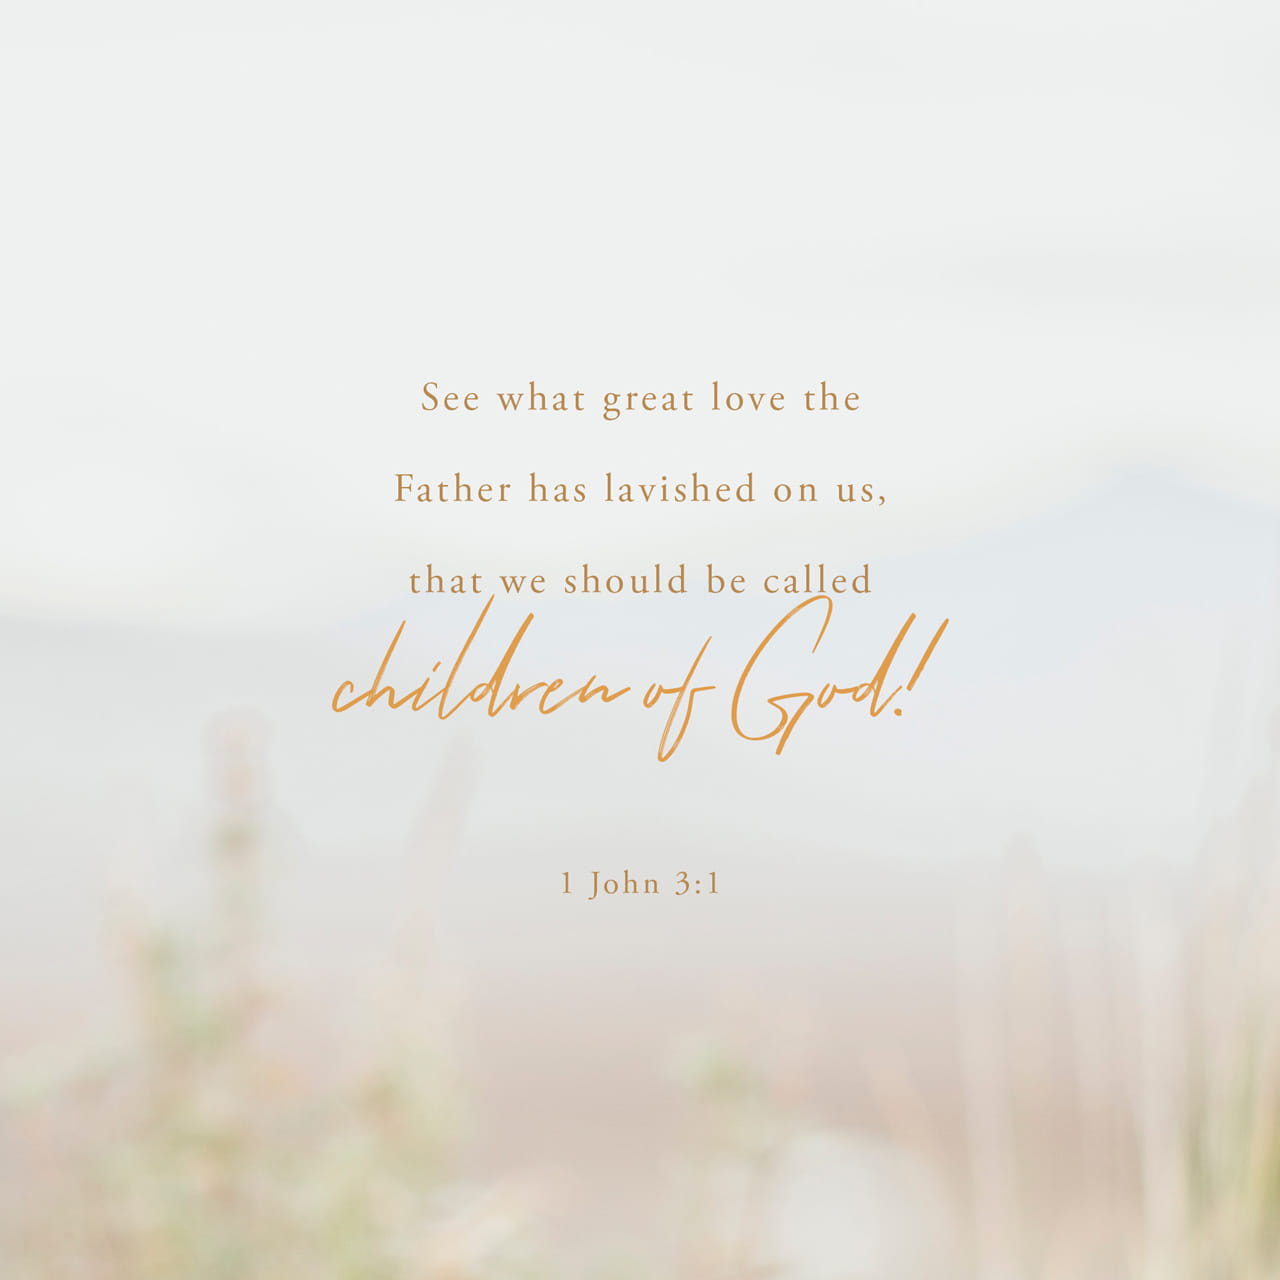 1 John 3:1 Behold, what manner of love the Father hath bestowed upon us, that we should be called the sons of God: therefore the world knoweth us not, because it knew him not. | King James Version (KJV)